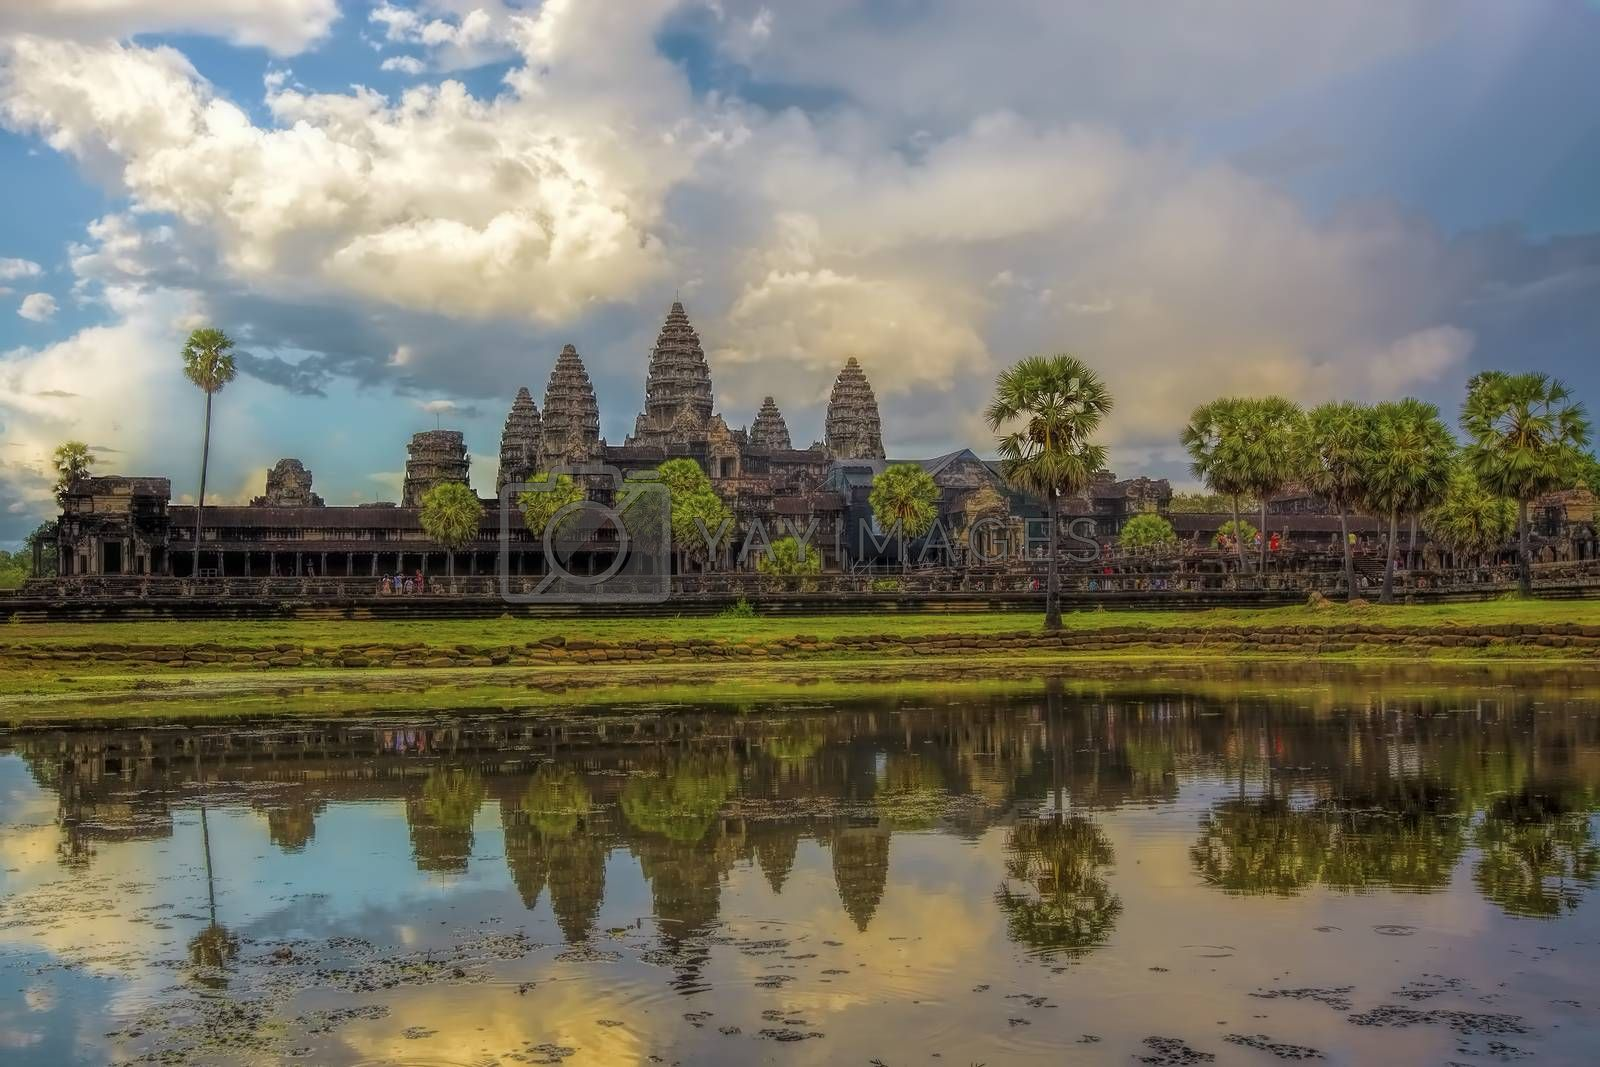 Sunset over the Angkor Wat temple in Cambodia